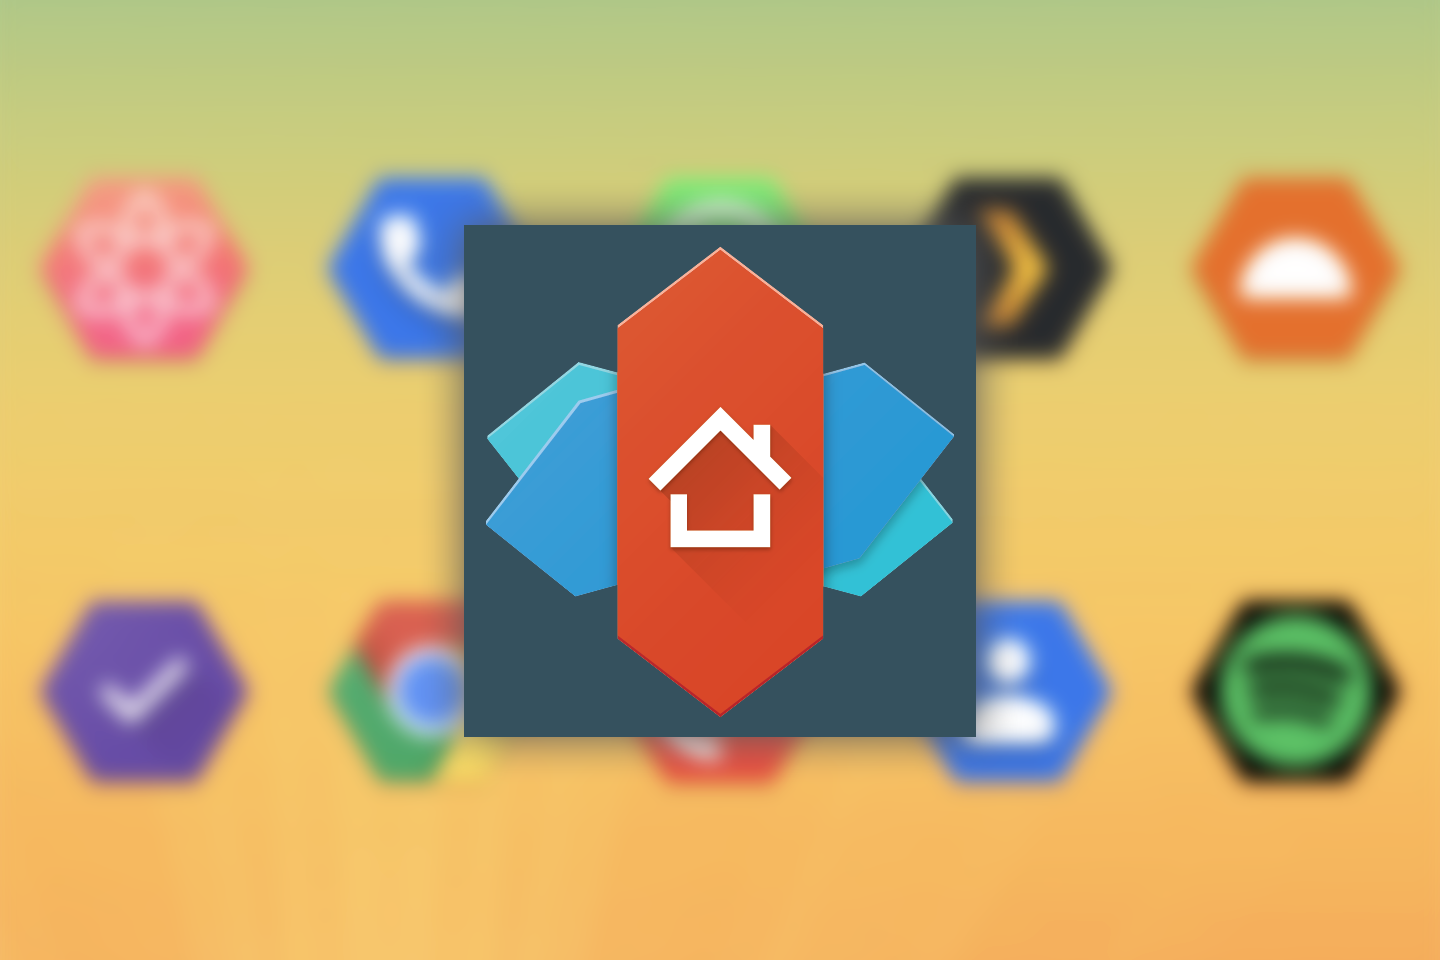 Nova Launcher Beta Adds Android 11 S Quirky Flower Pebble And Vessel Icon Shapes Apk Download